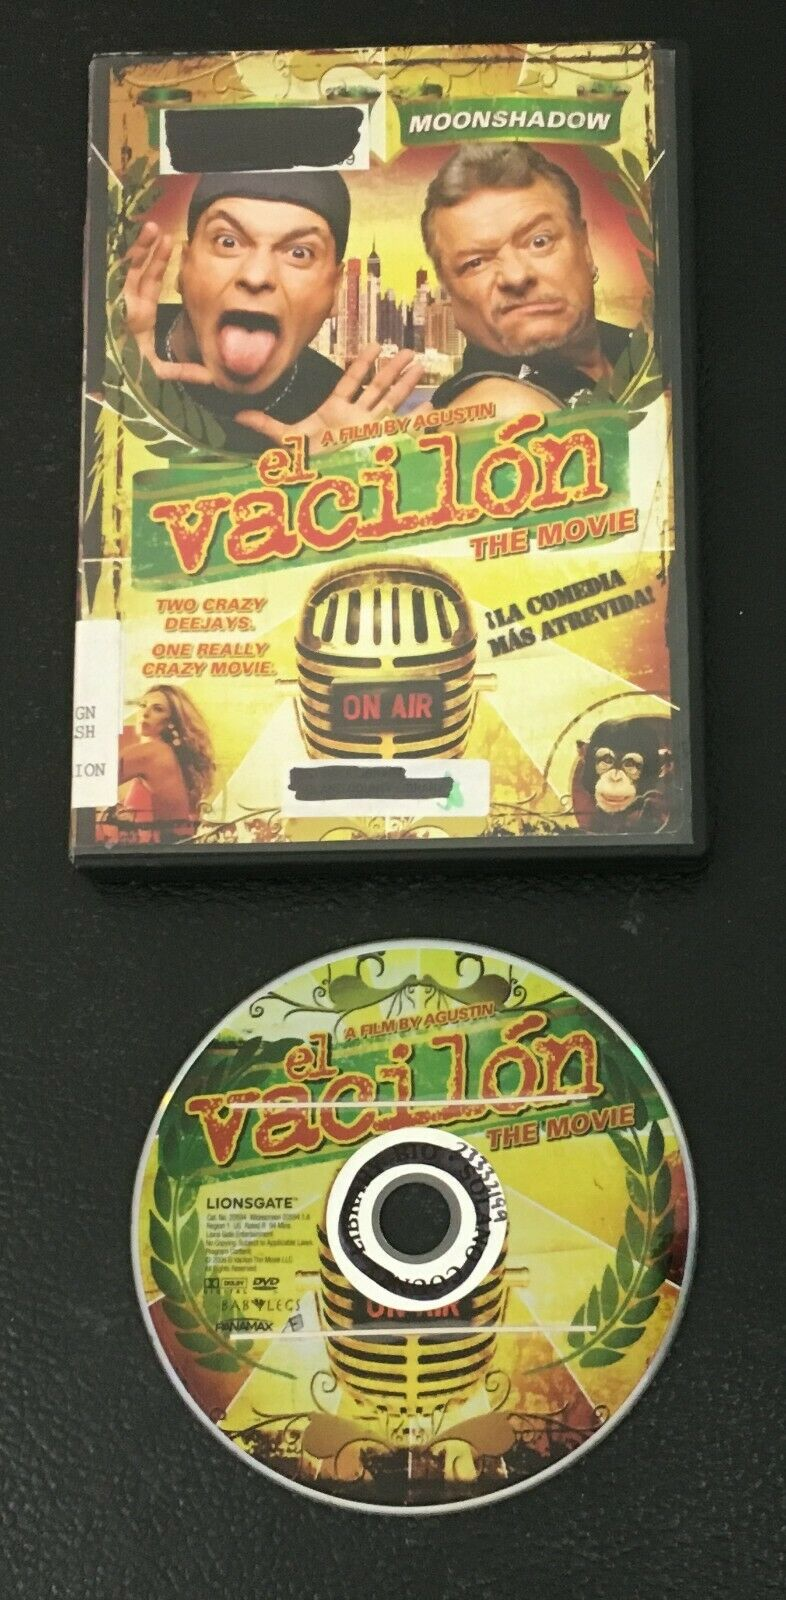 watch el vacilon the movie online free